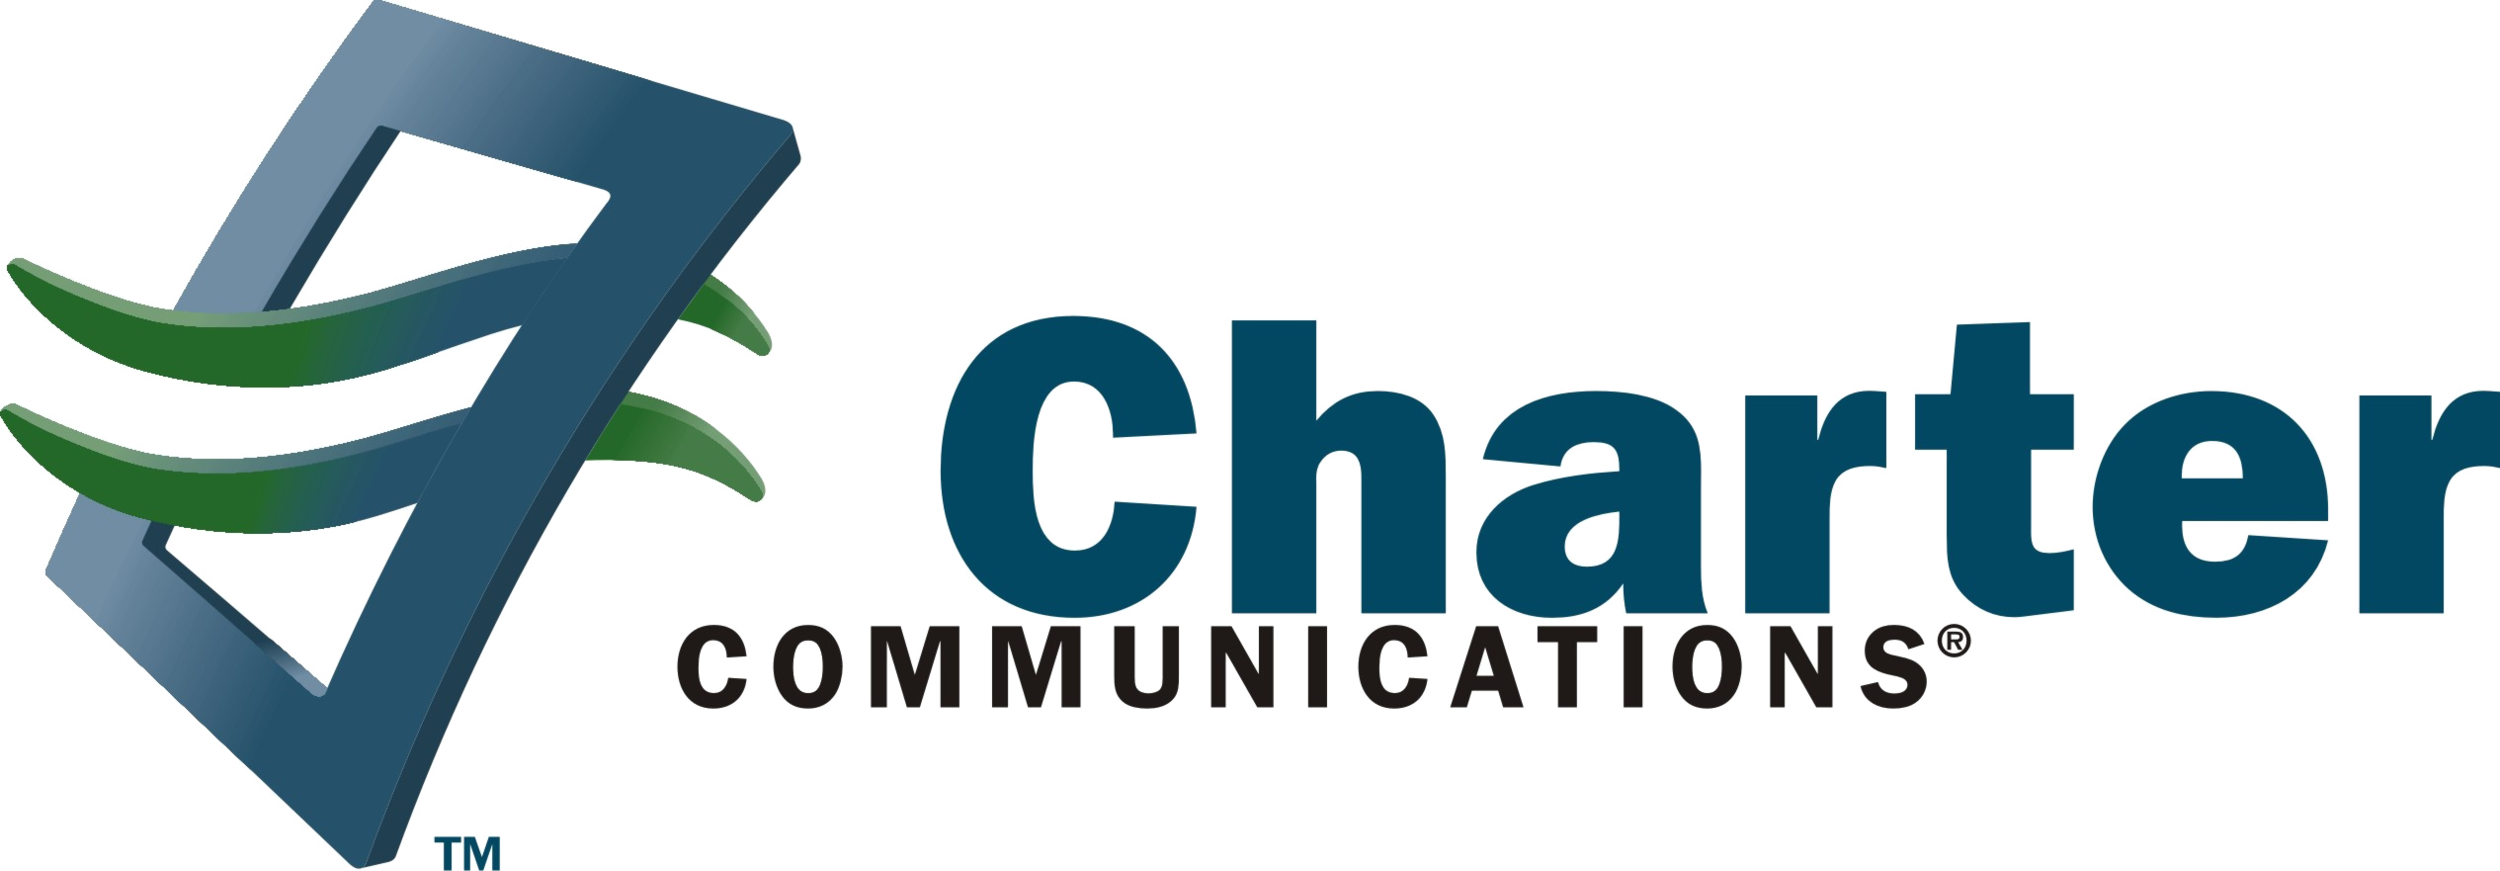 charter-communications-logo.png